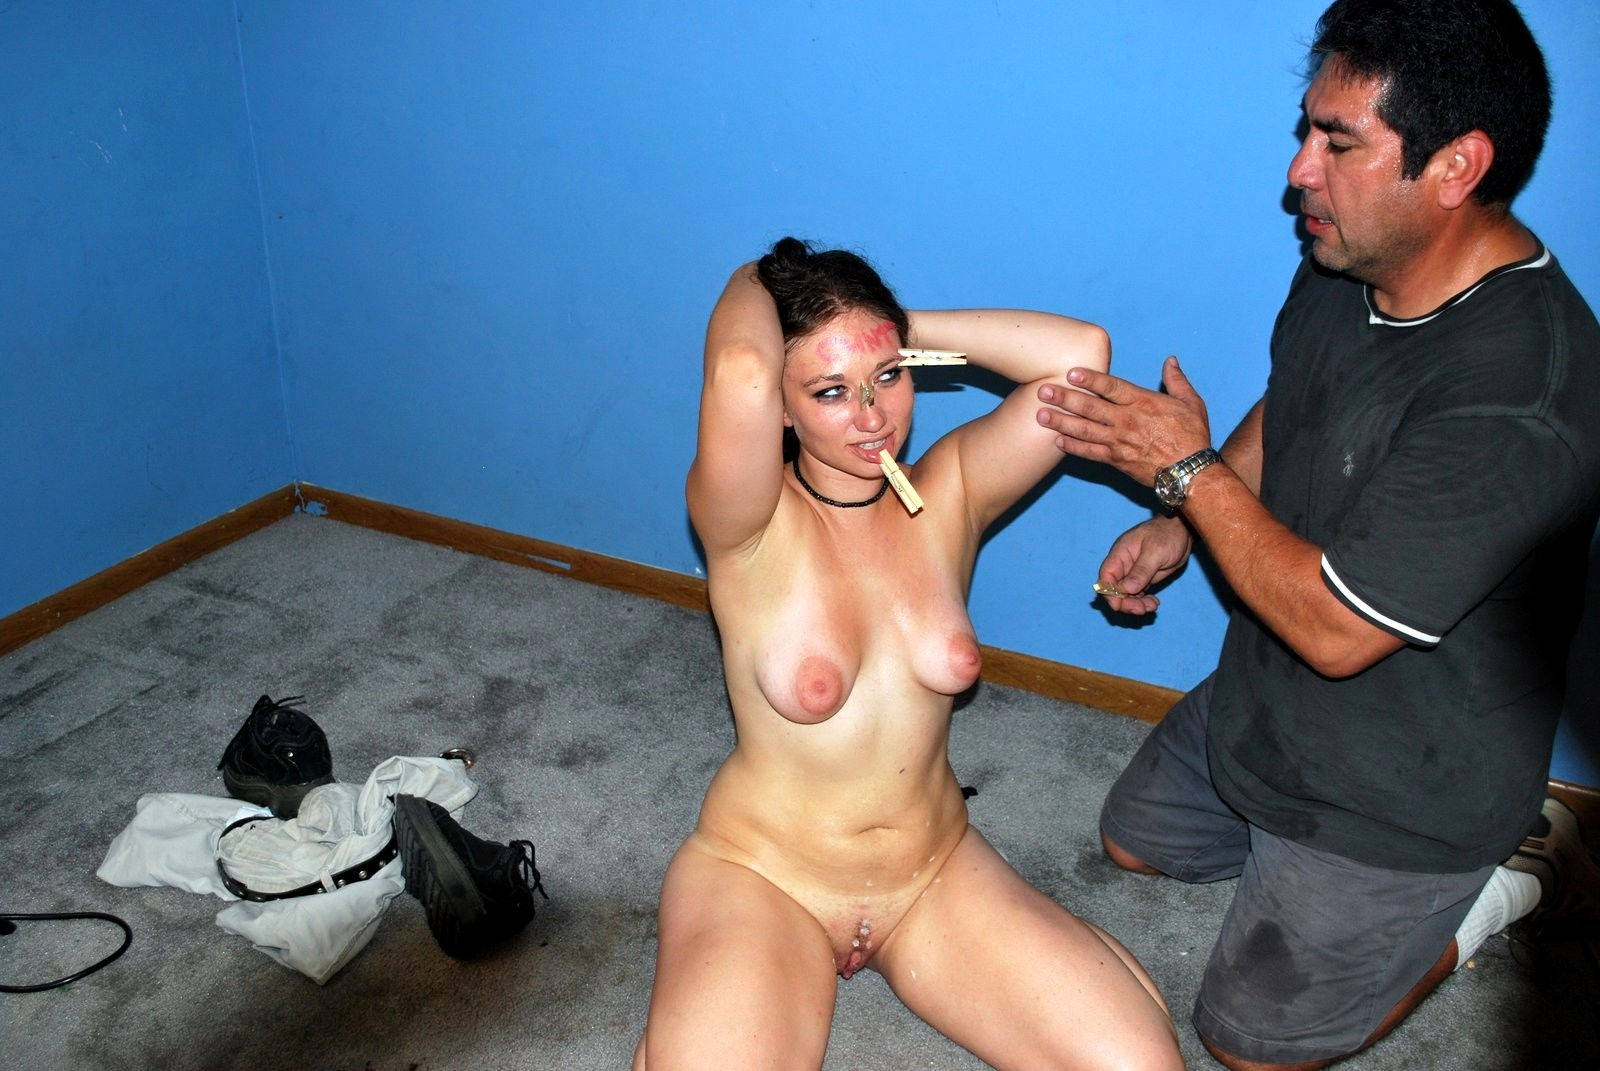 Stripped naked humiliation in public